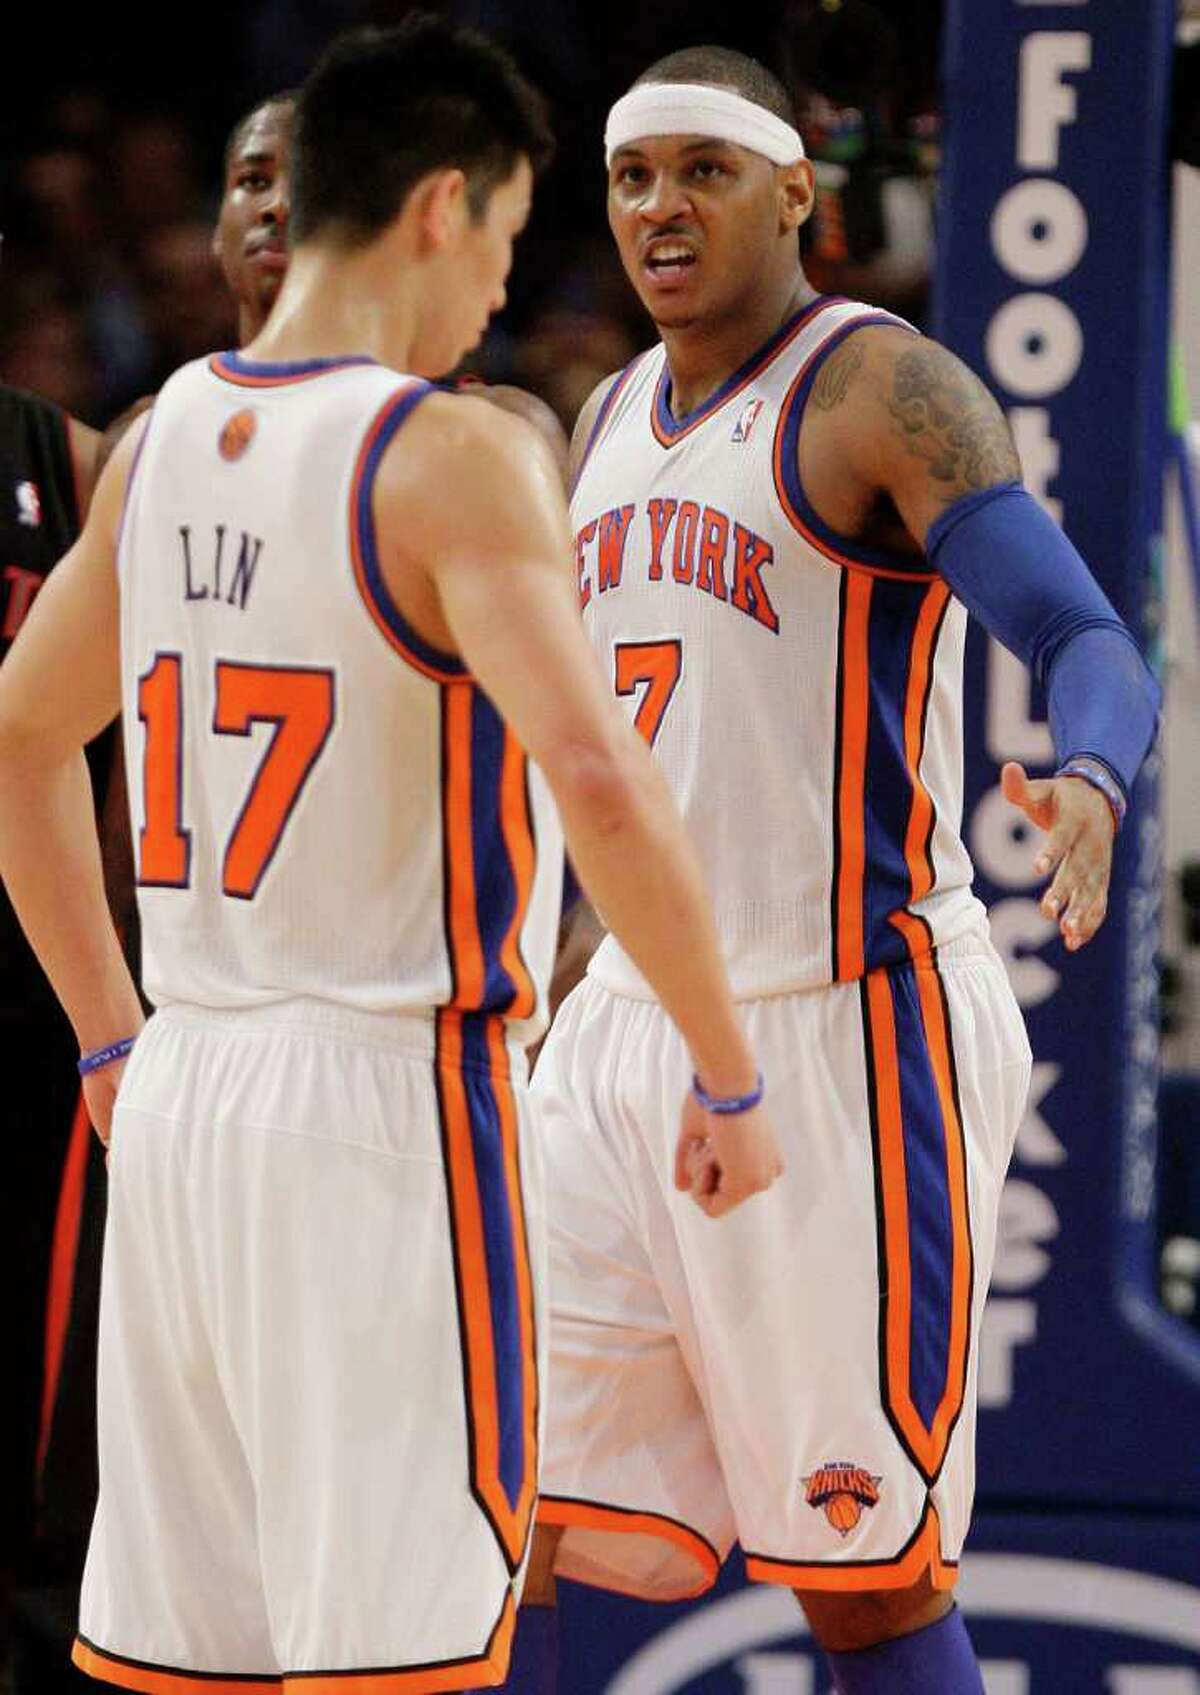 New York Knicks' Carmelo Anthony (7) reacts as teammate Jeremy Lin (17) looks on during the second half of an NBA basketball game against the Toronto Raptors, Tuesday, March 20, 2012, in New York. The Knicks won 106-87 (AP Photo/Frank Franklin II)